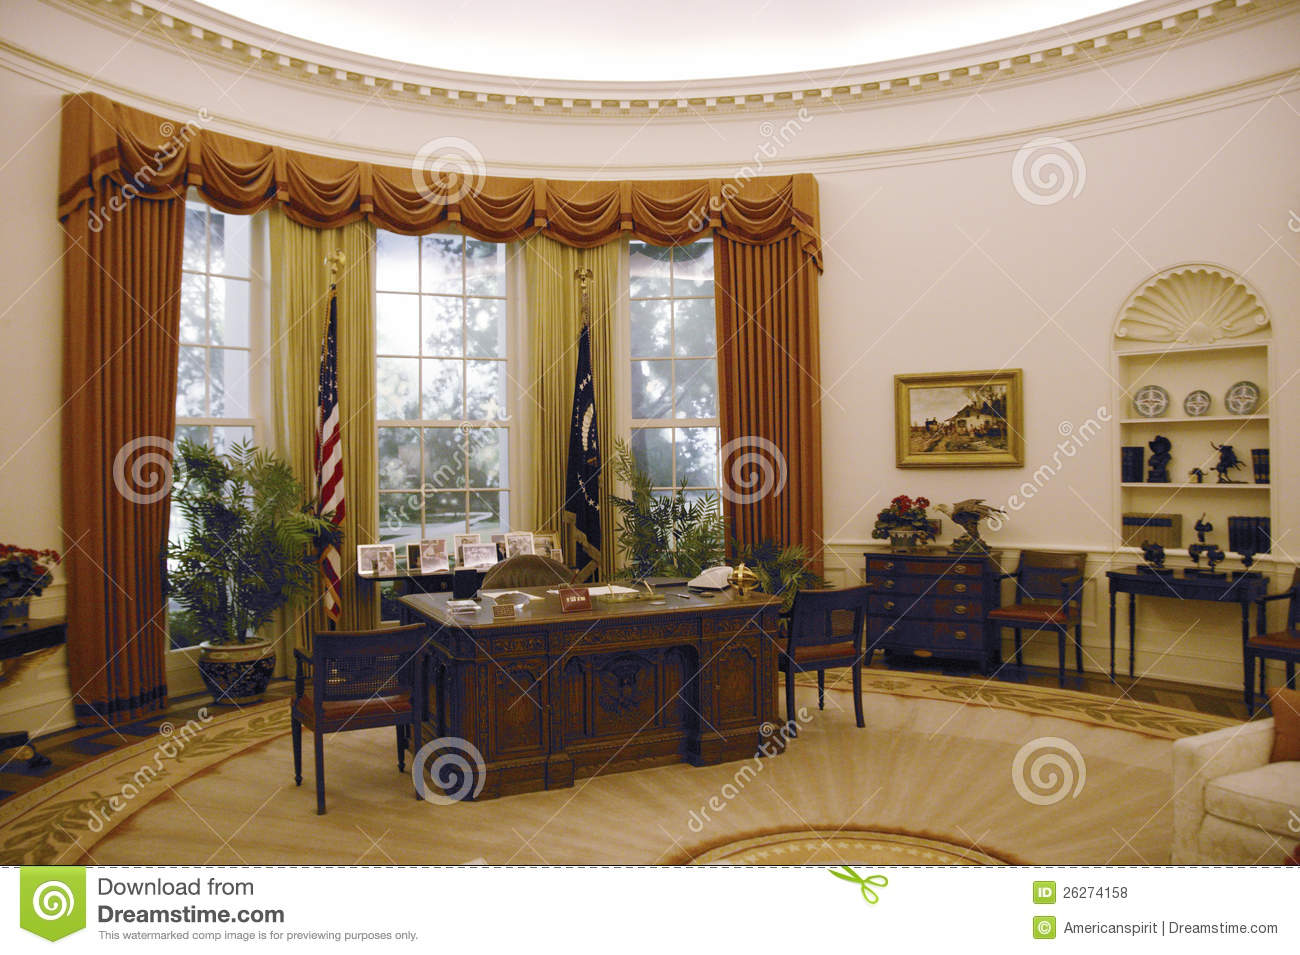 Replica Of The White House Oval Office Editorial Stock Photo  Image 26274158